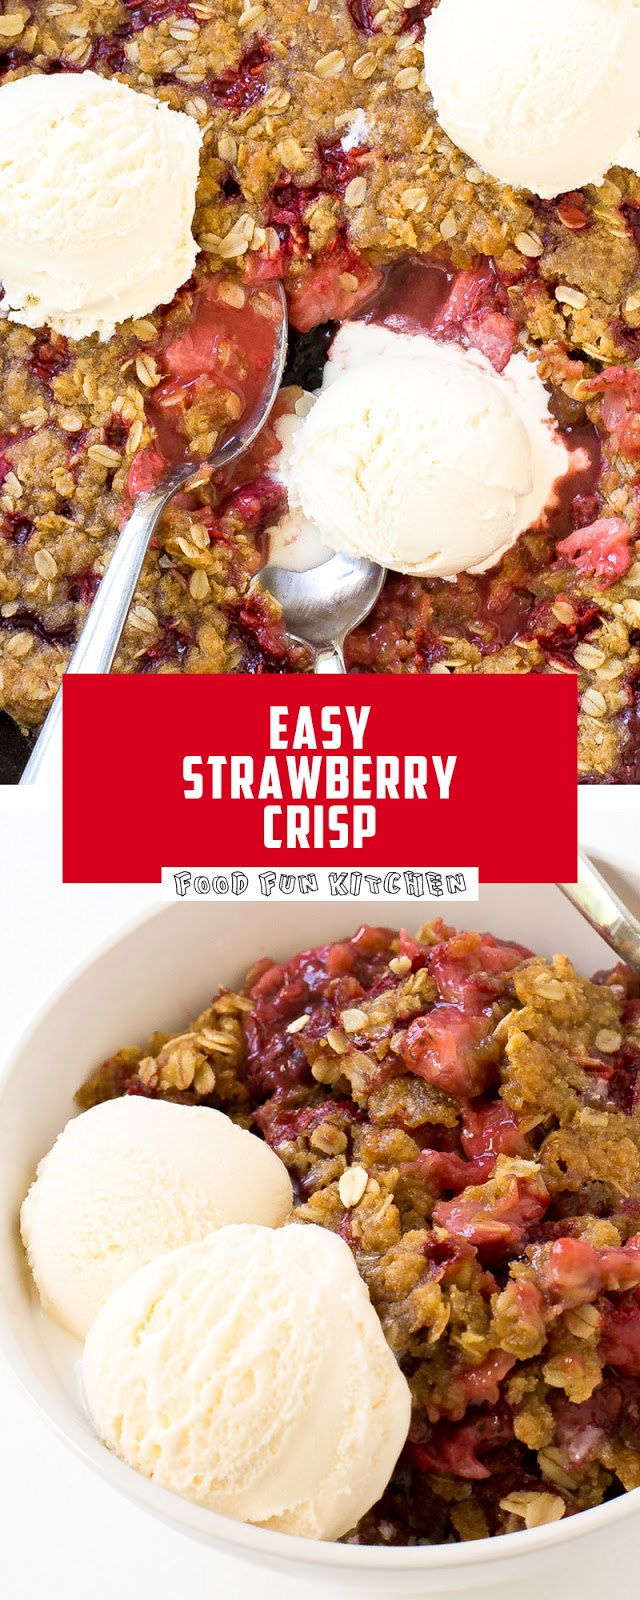 EASY STRAWBERRY CRISP